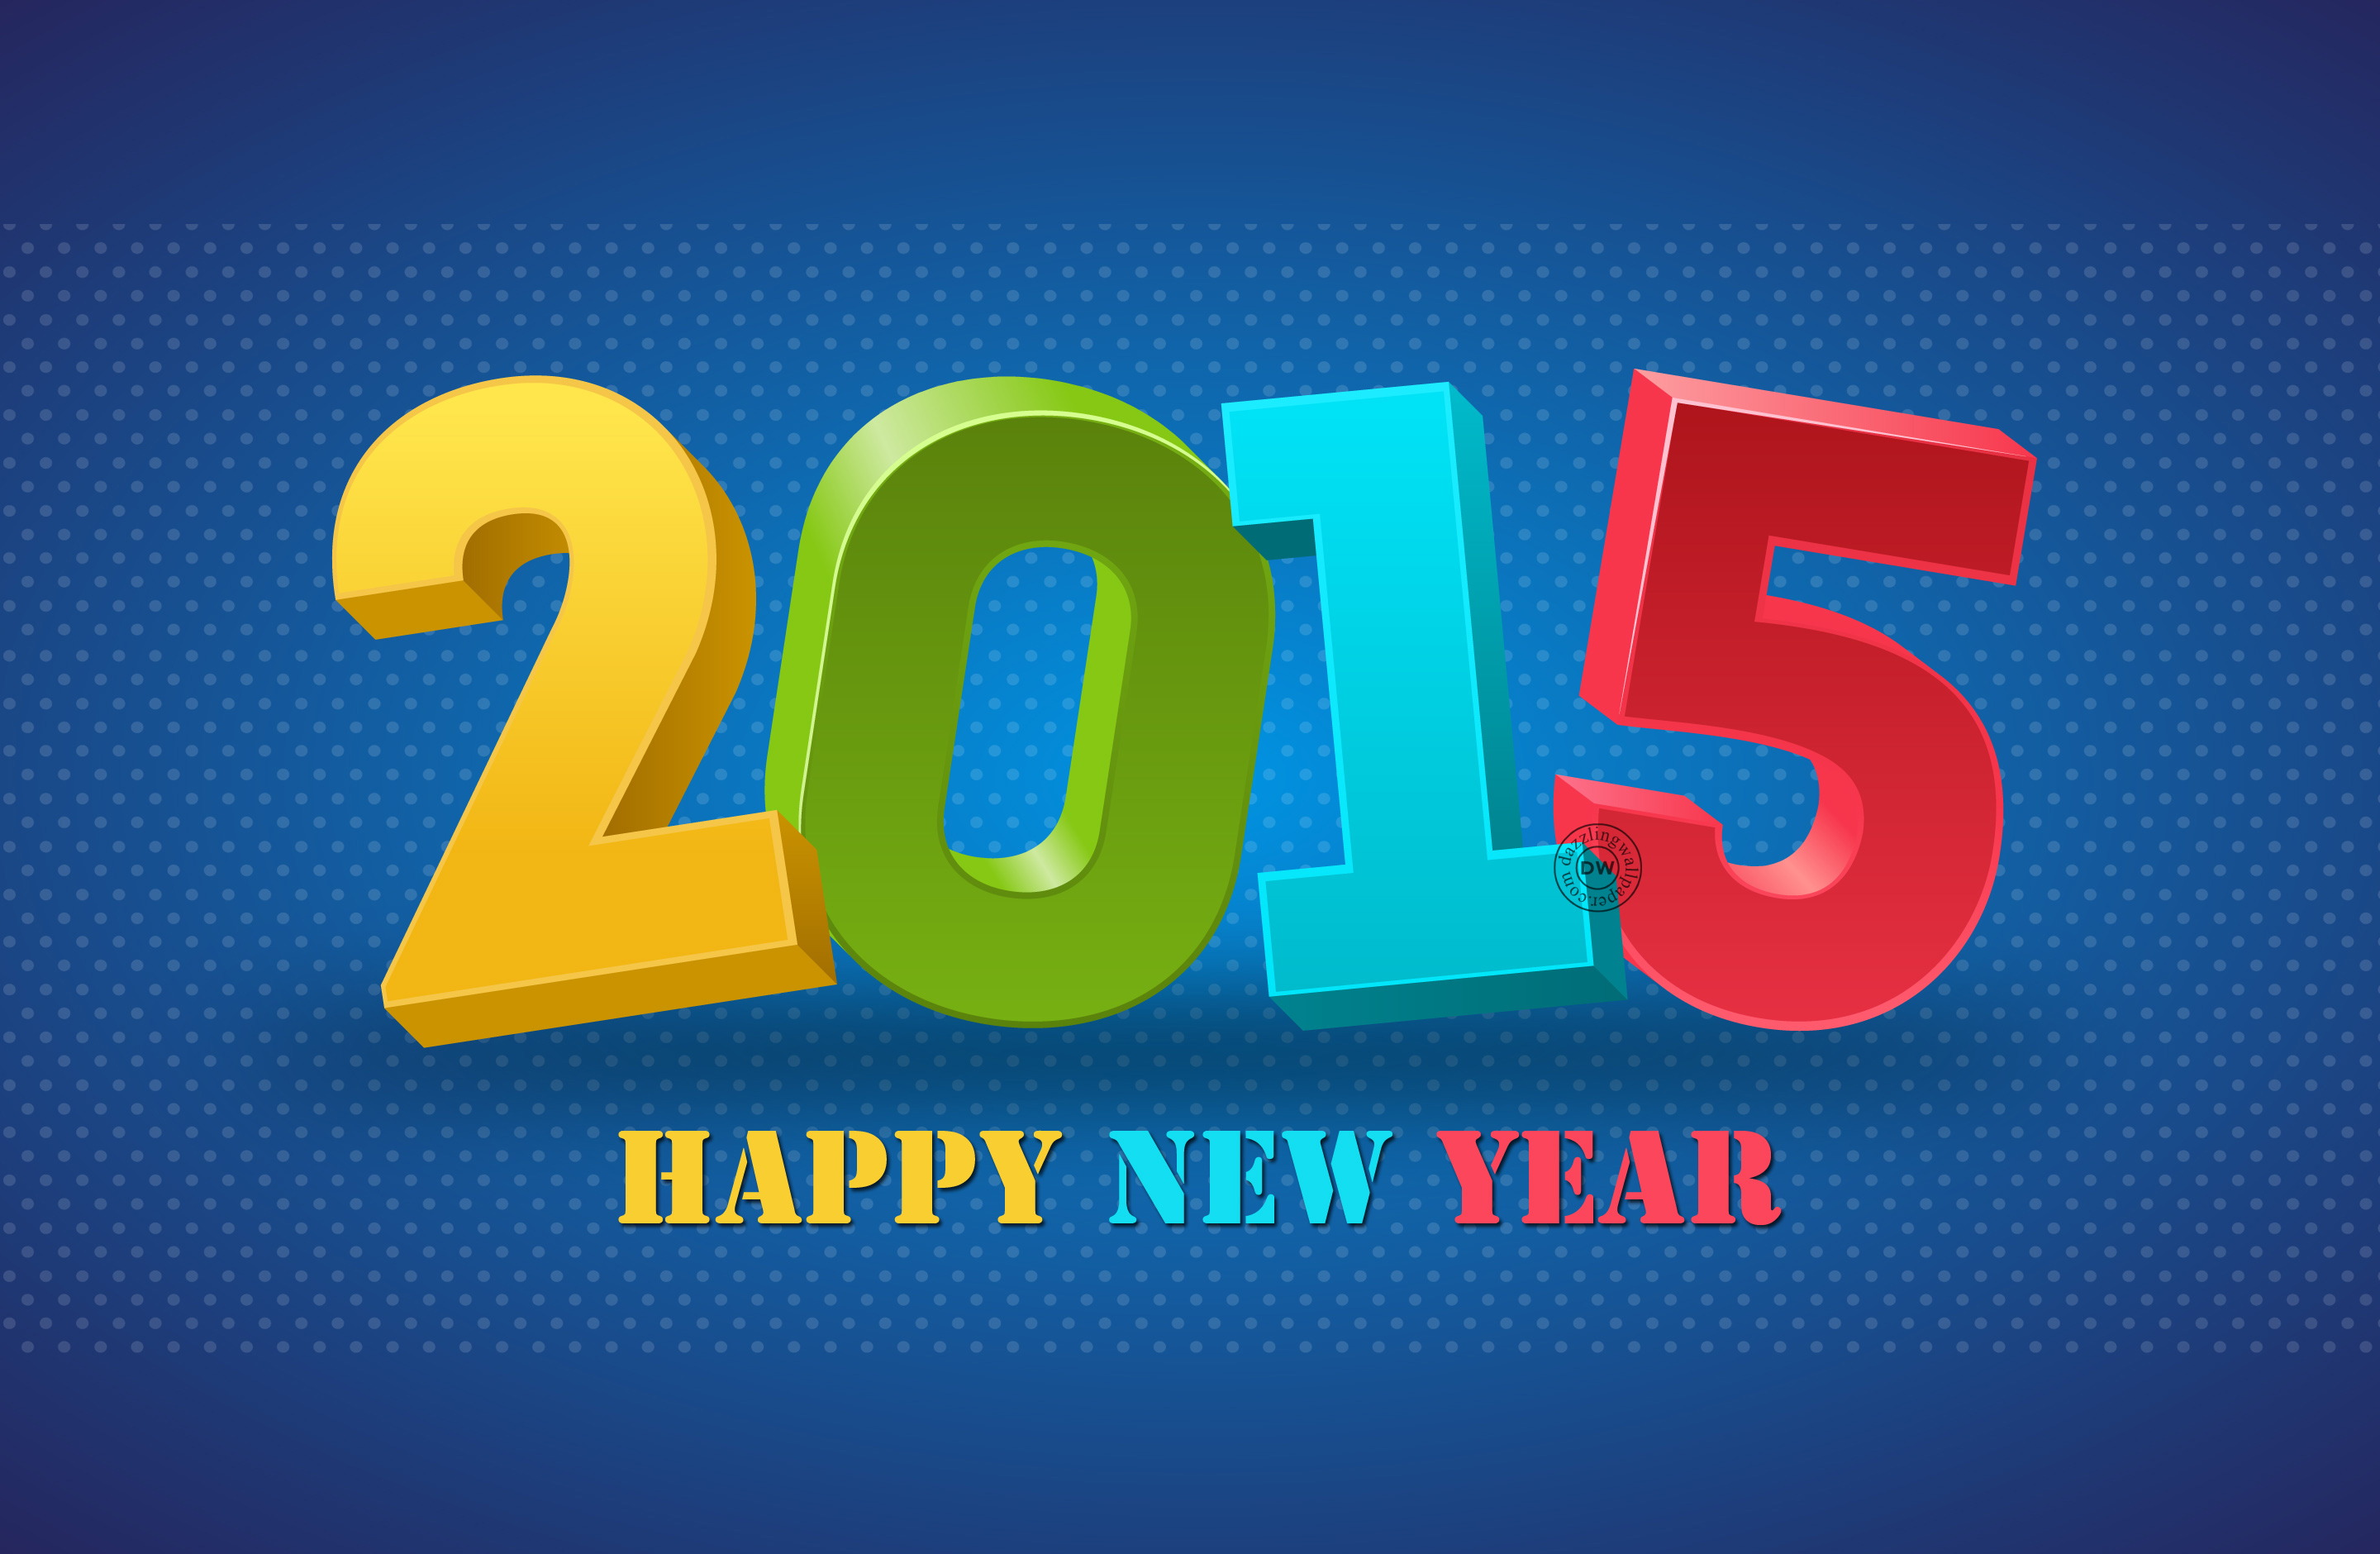 Very happy new year 2015 wallpaper 2880x1880